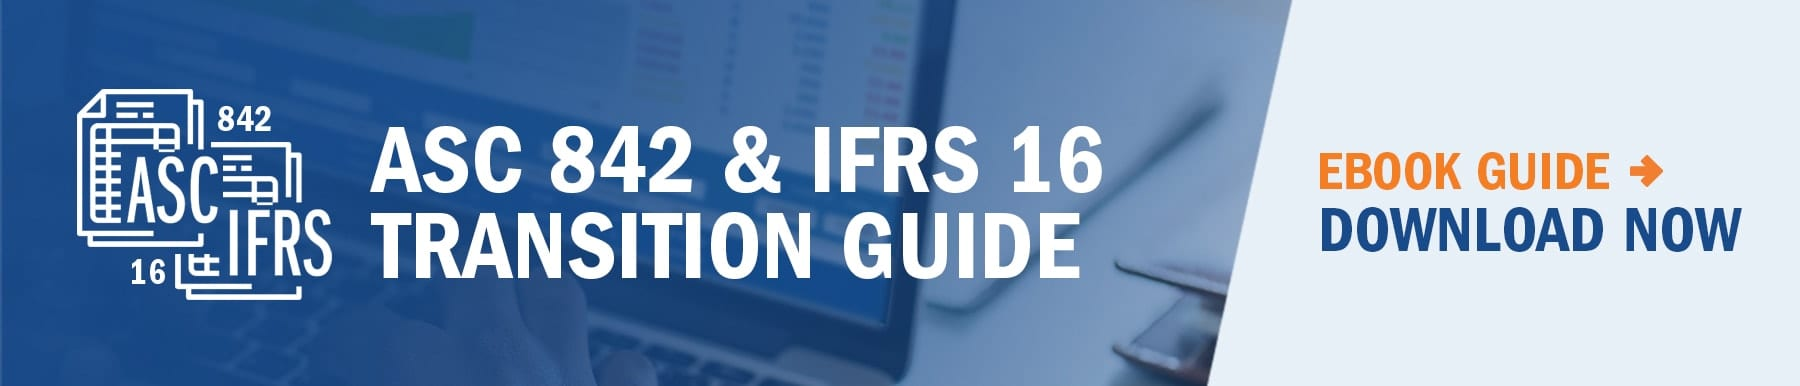 ASC842 and IFRS16 Transition Guide